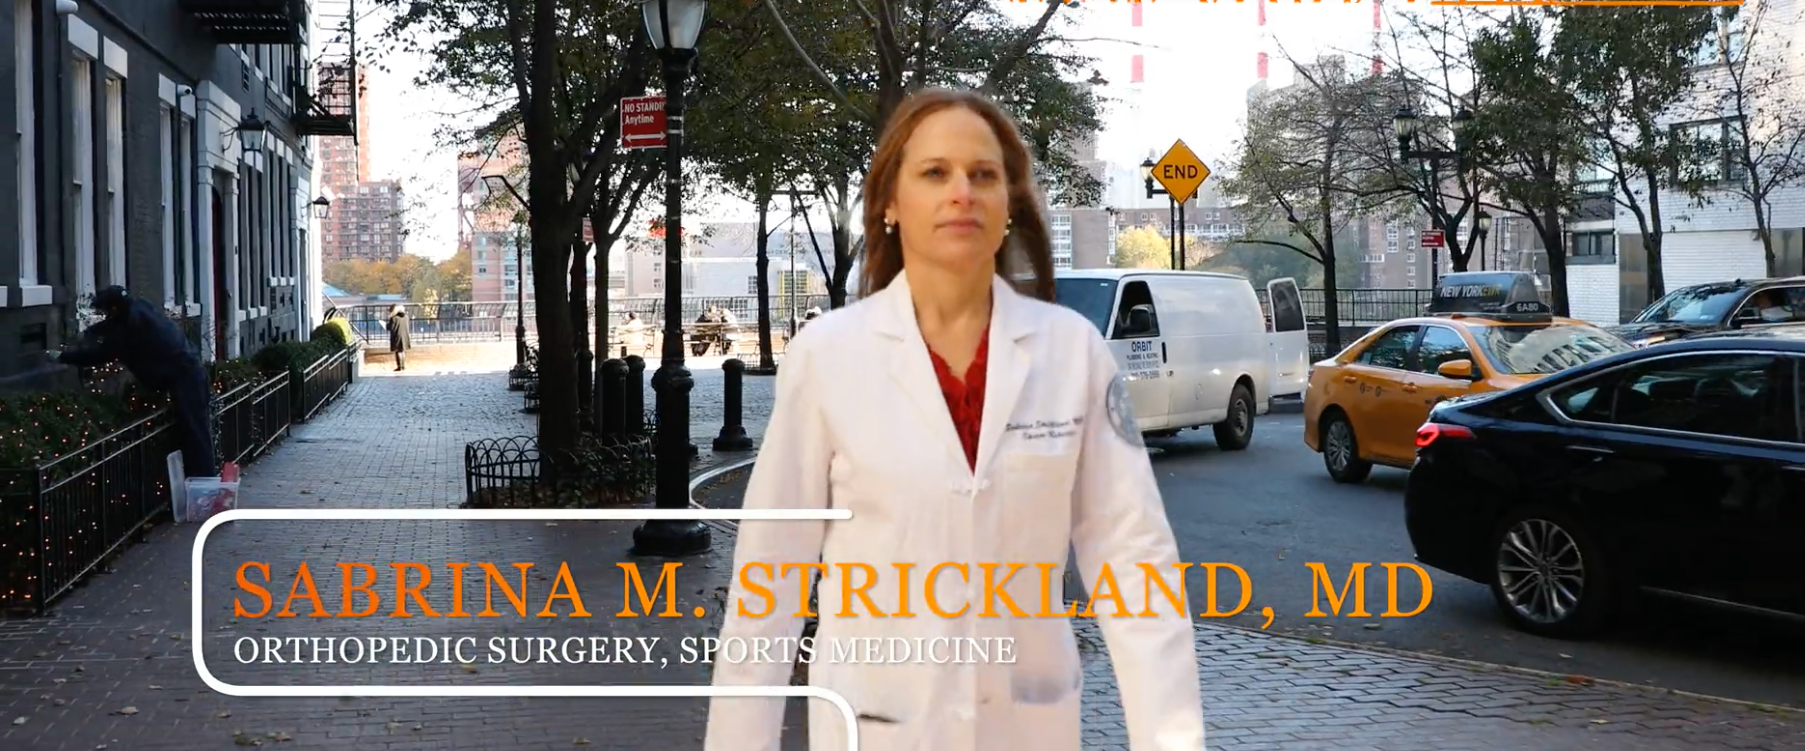 Get To Know Dr. Strickland - Orthopaedic Sports Surgeon